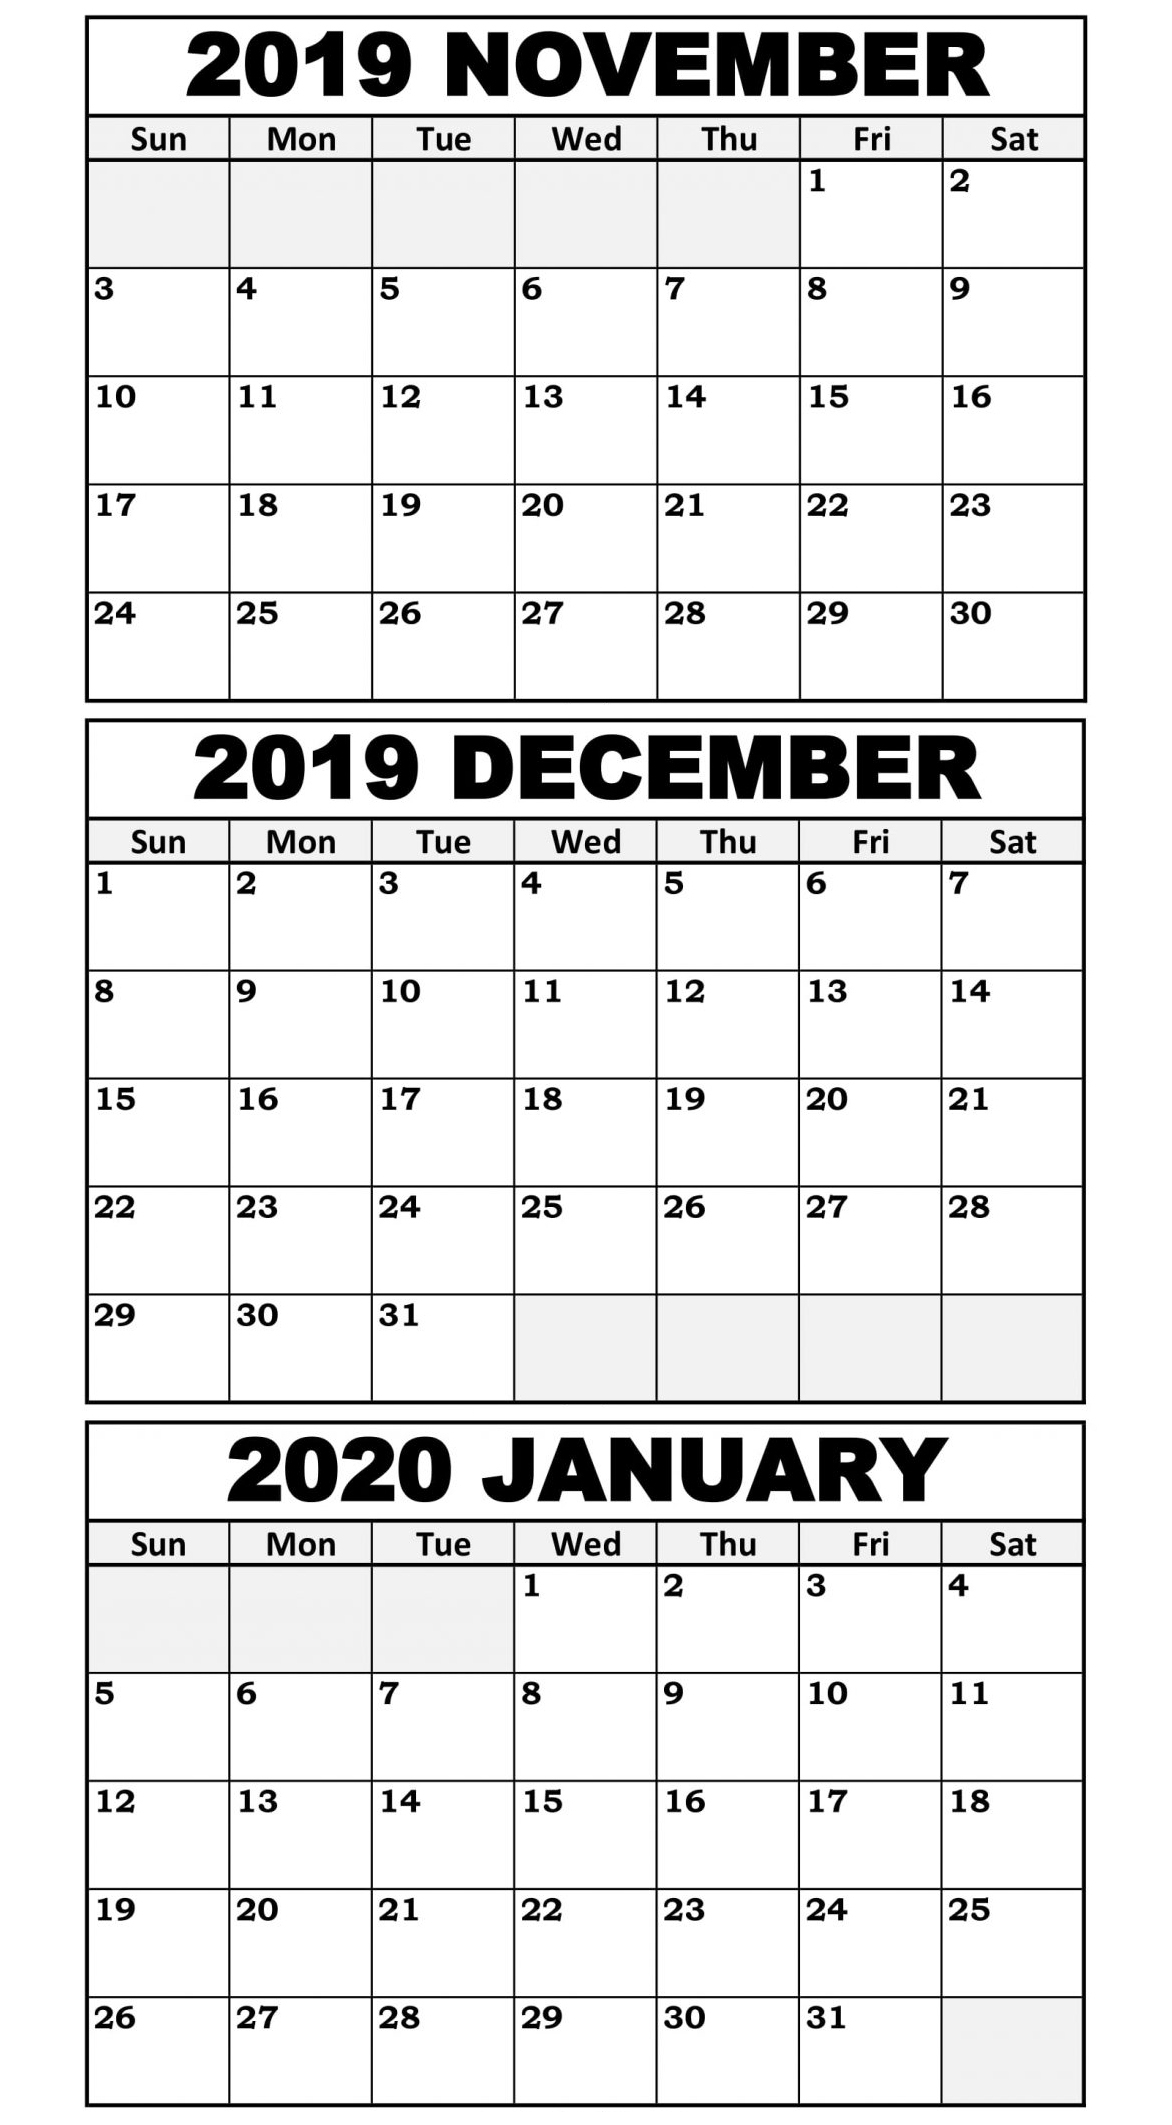 November 2019 To January 2020 Calendar Template  2019 within November December January Calendar